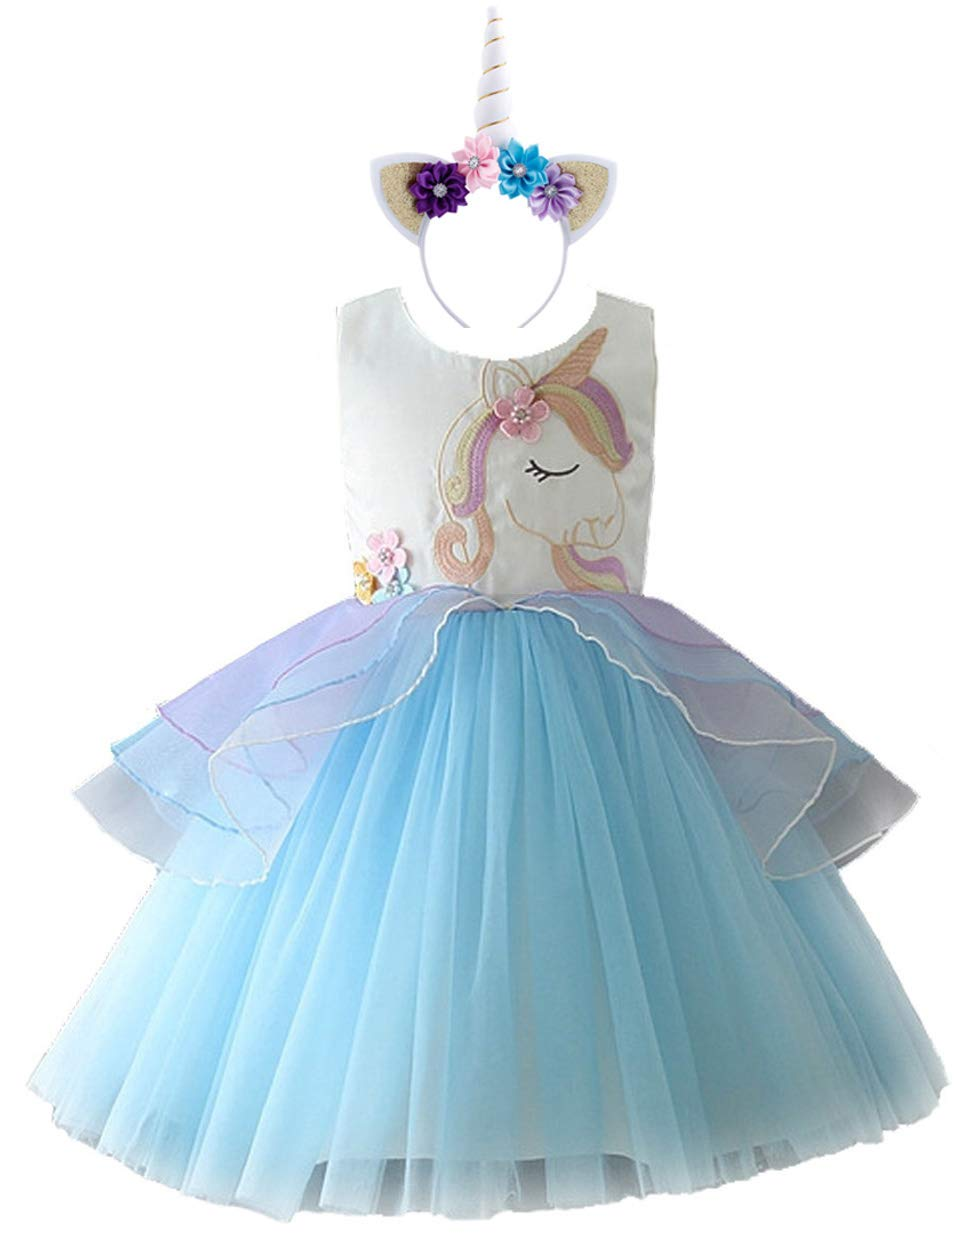 FREEFLY Kids Girls Unicorn Party Fancy Dress for Cosplay Festival Performance Birthday Wedding Carnival Halloween Photo Shoot Prom Ball Gown